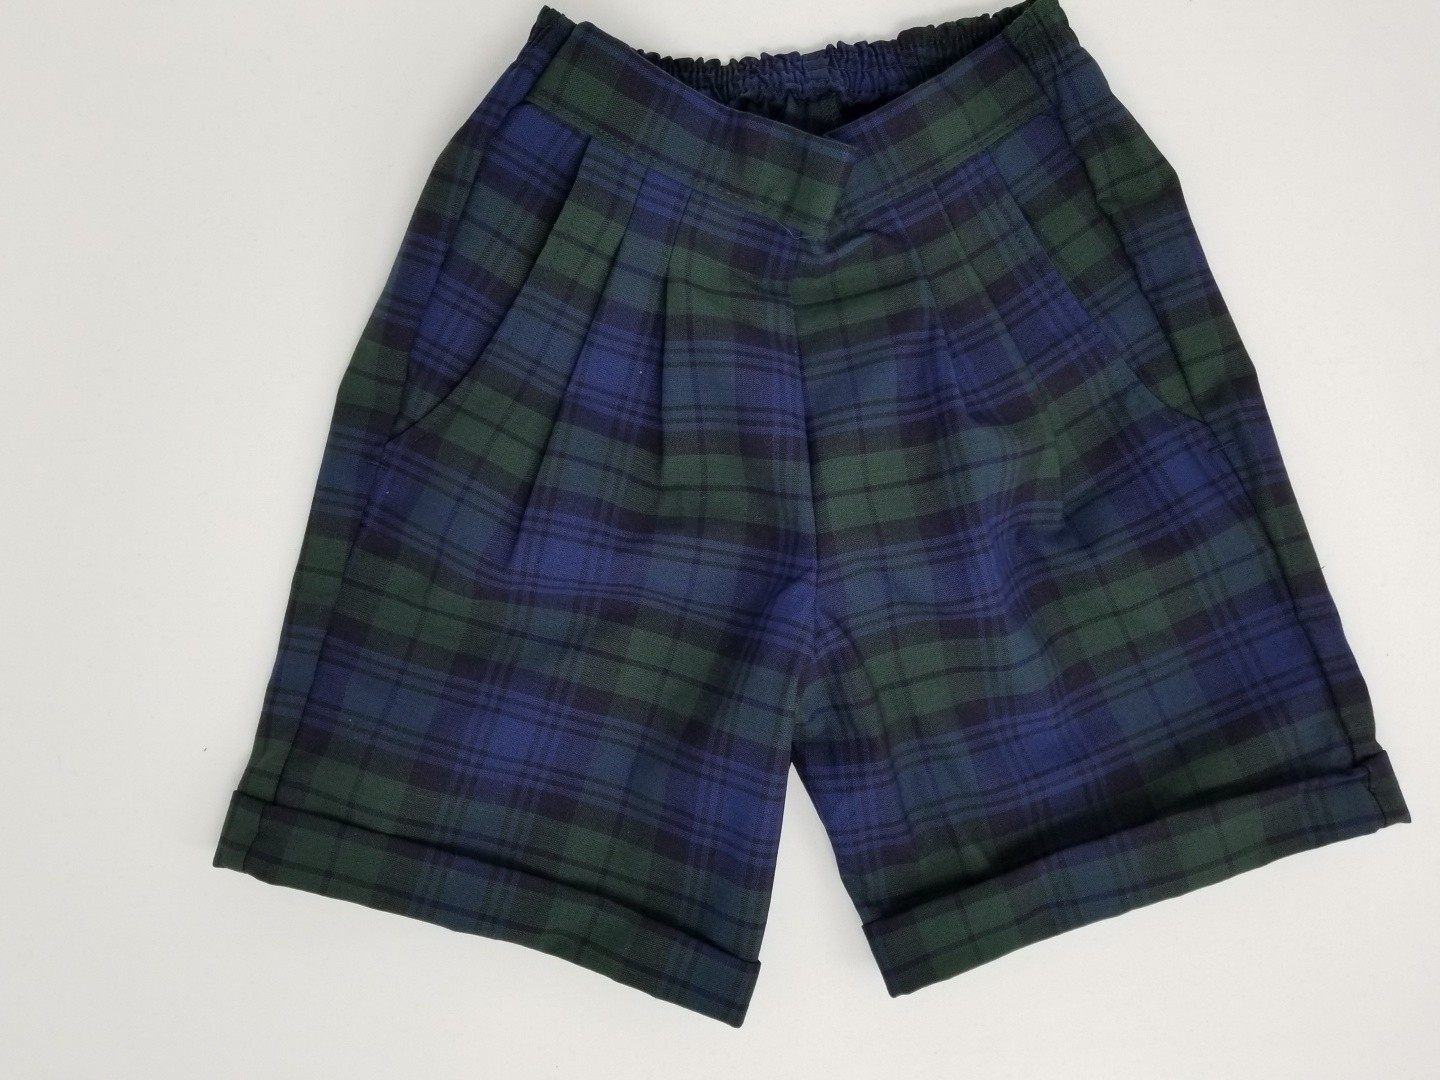 Girls Plaid Shorts- Cuffed hem-Plaid 14